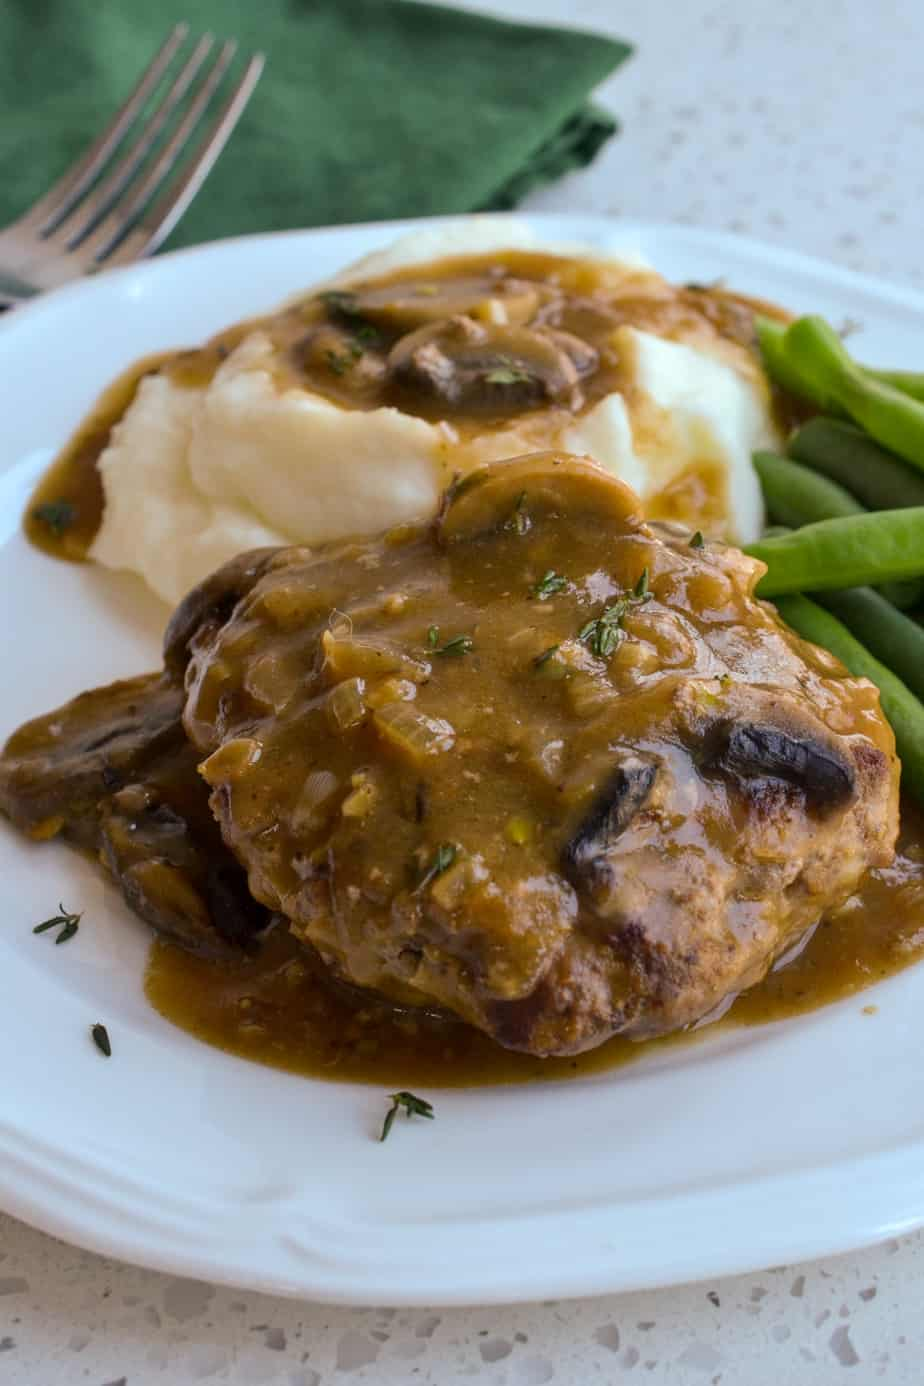 Tender beef patties with rich mushroom gravy.